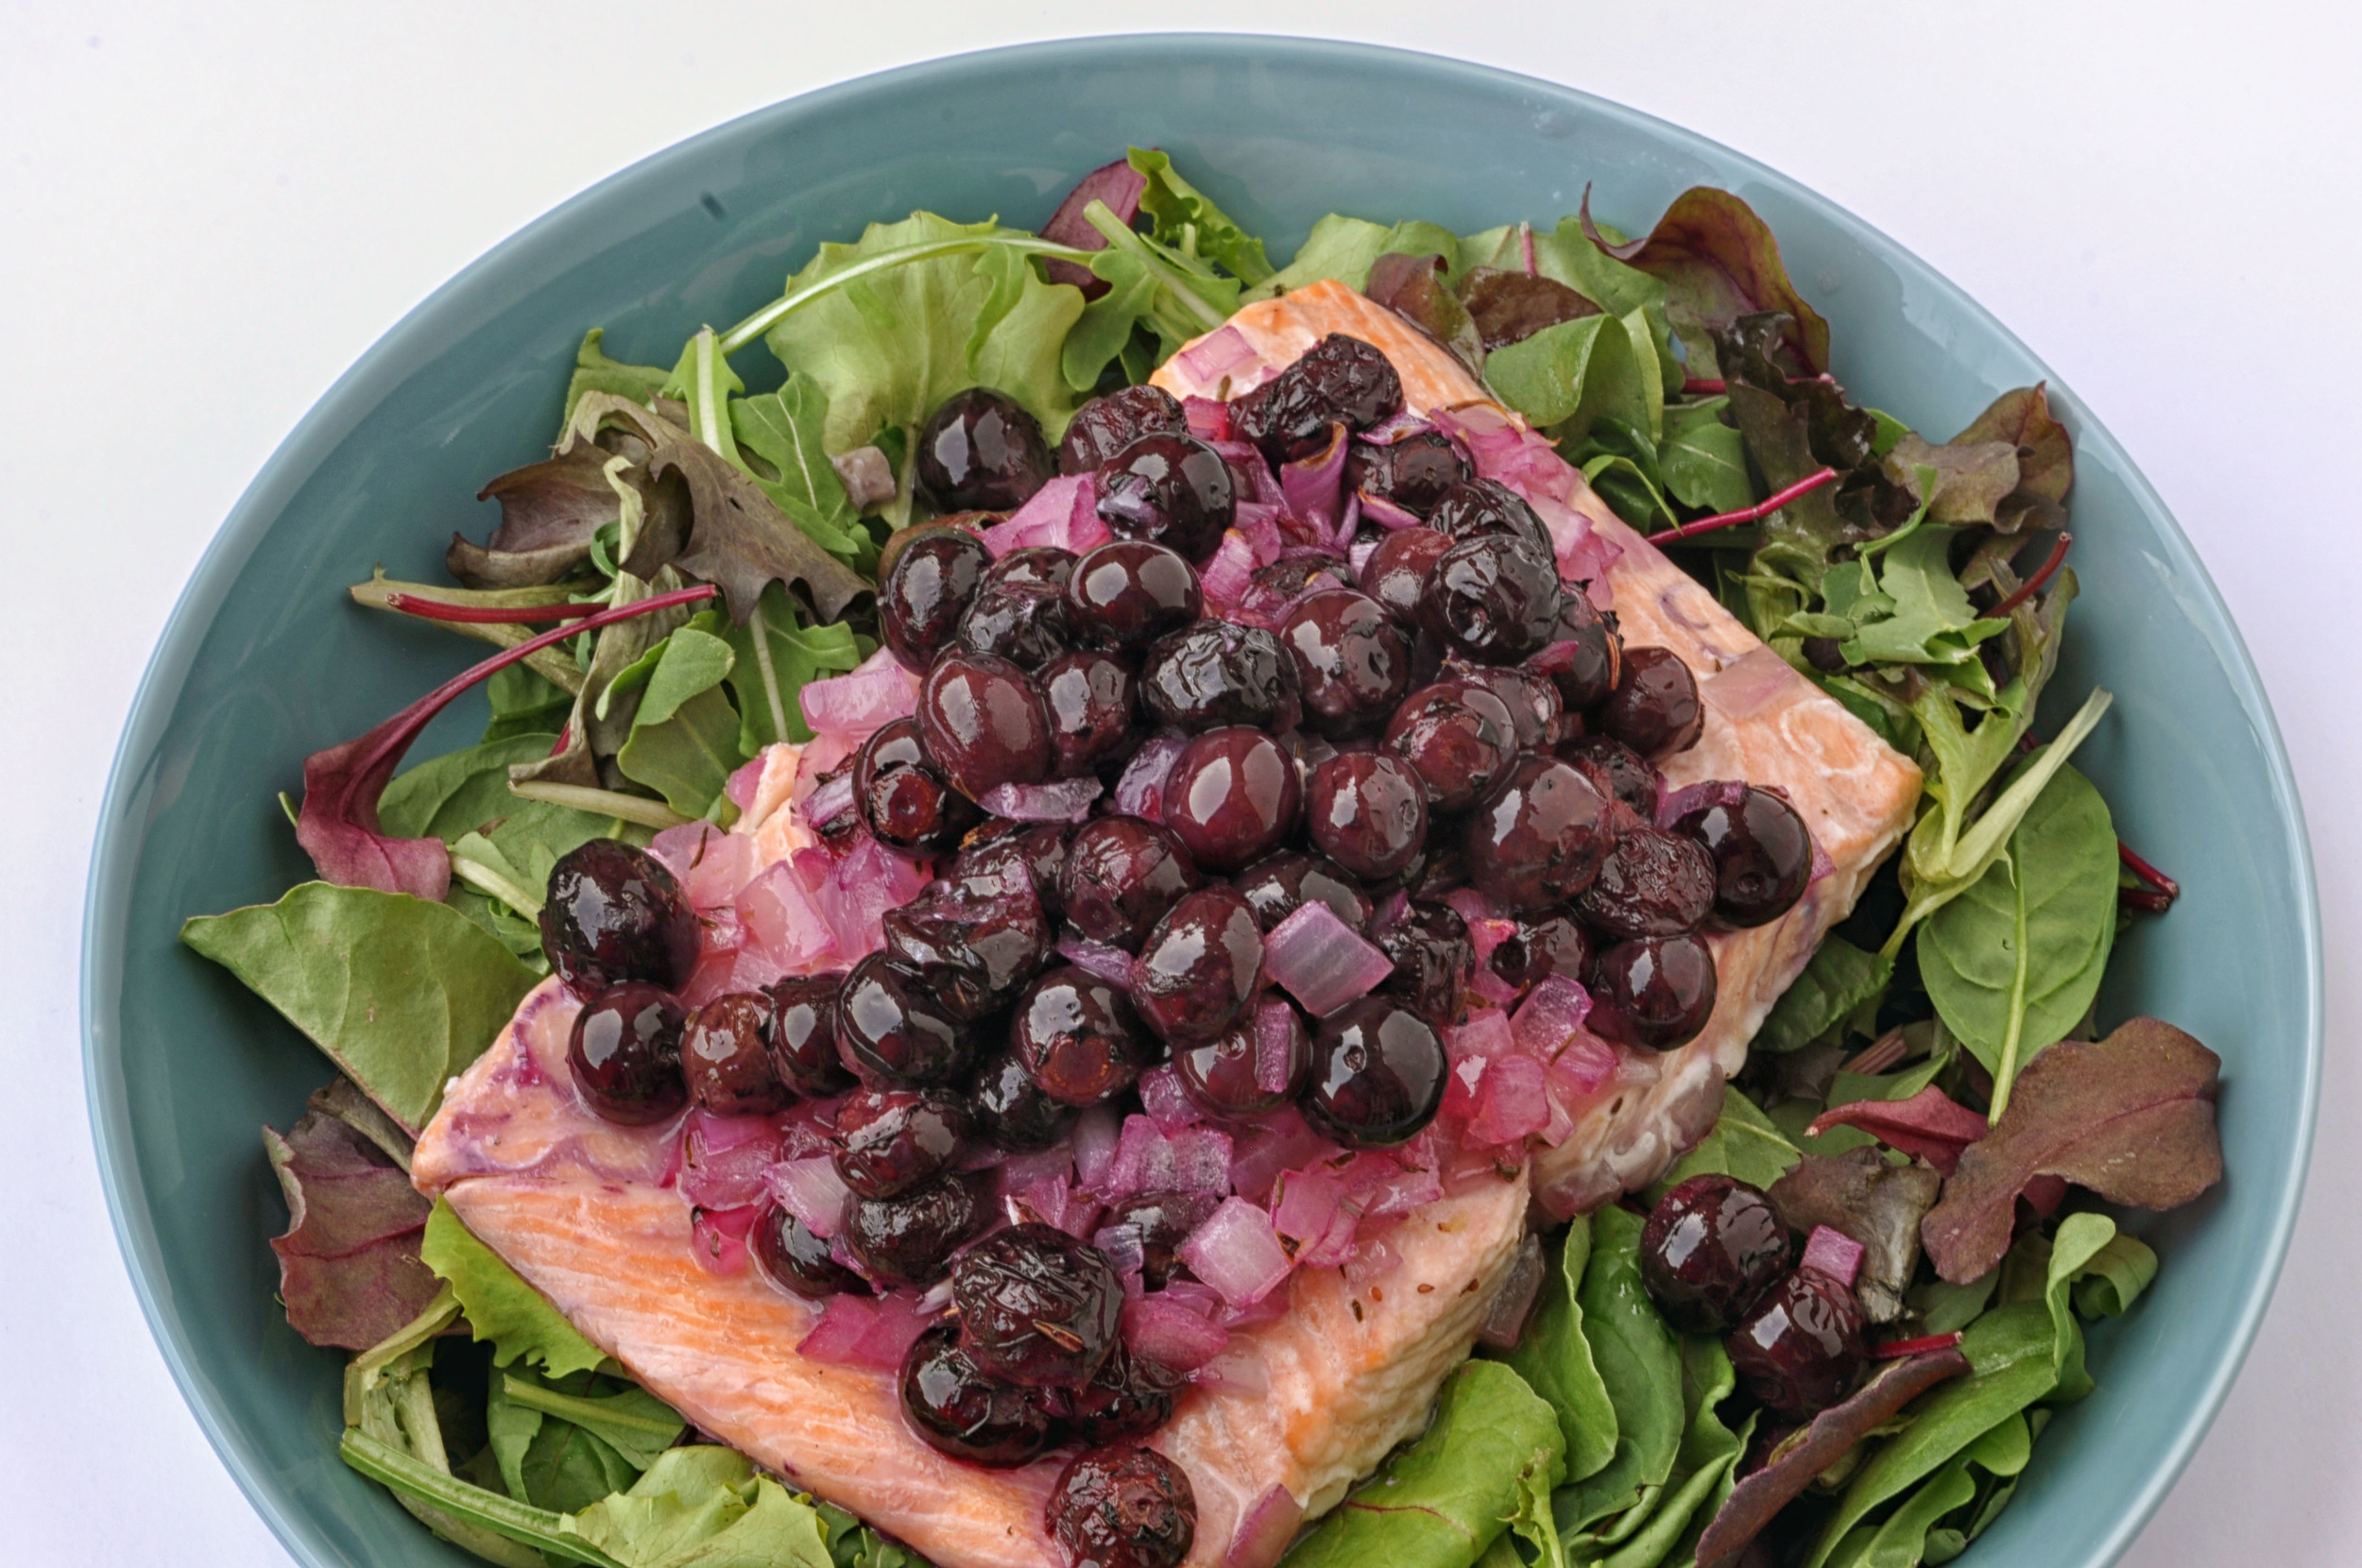 Salmon with blueberries and white wine on a bed of mixed greens. A healthy lunch or dinner recipe.